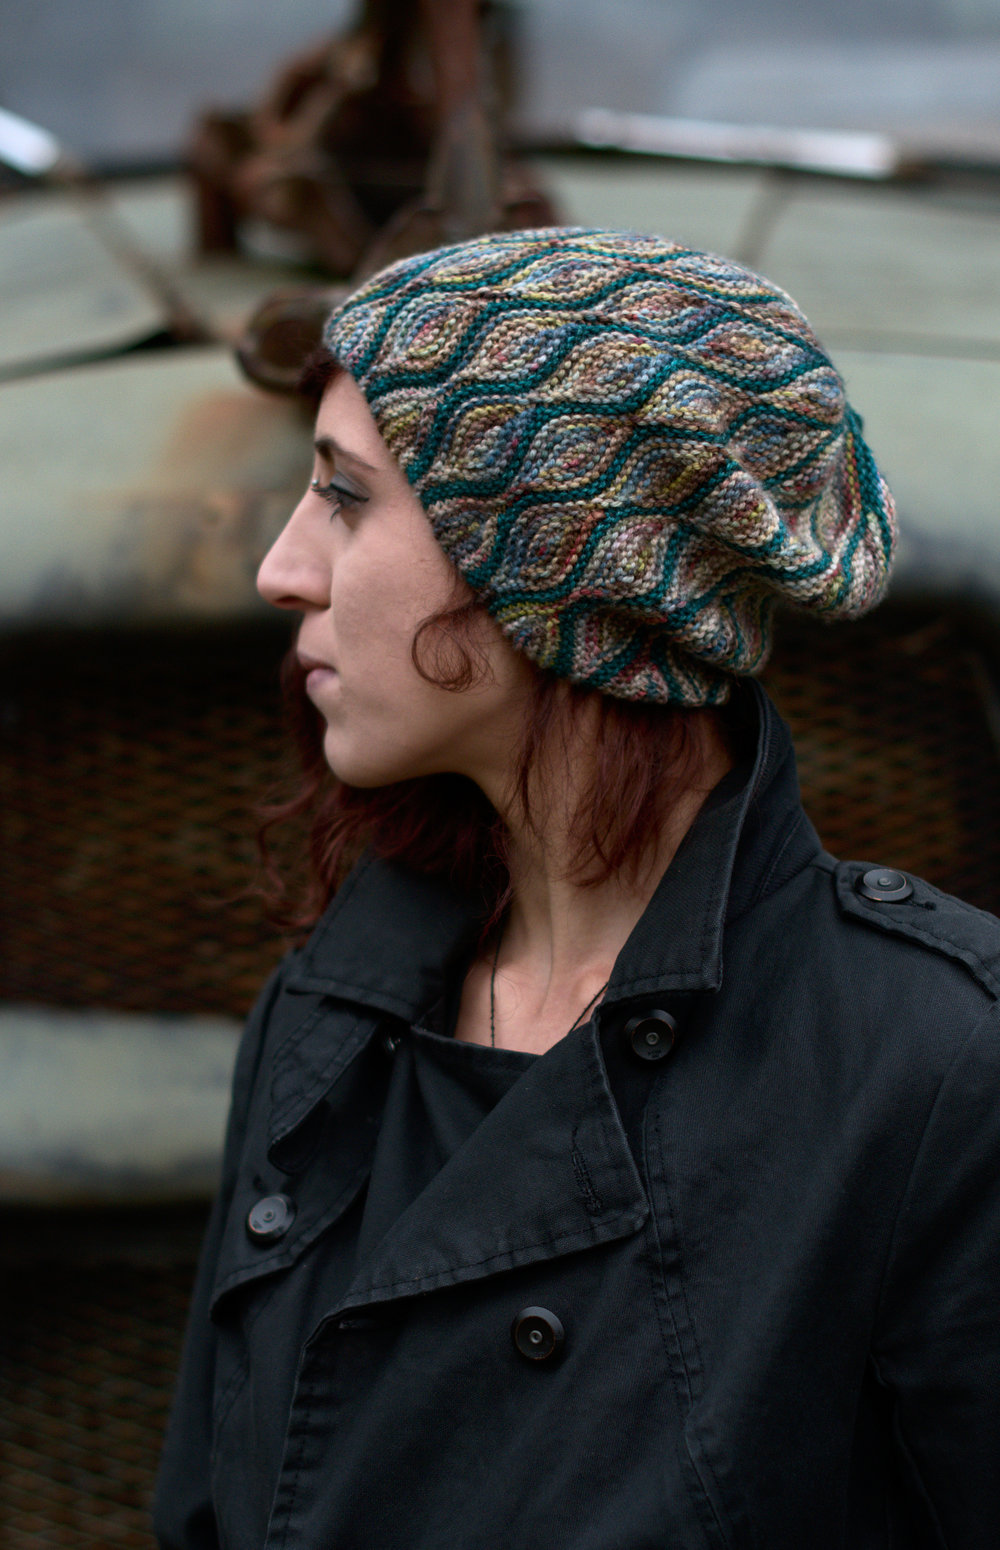 Rhinebeck hat sideways knit short row slouchy hat pattern